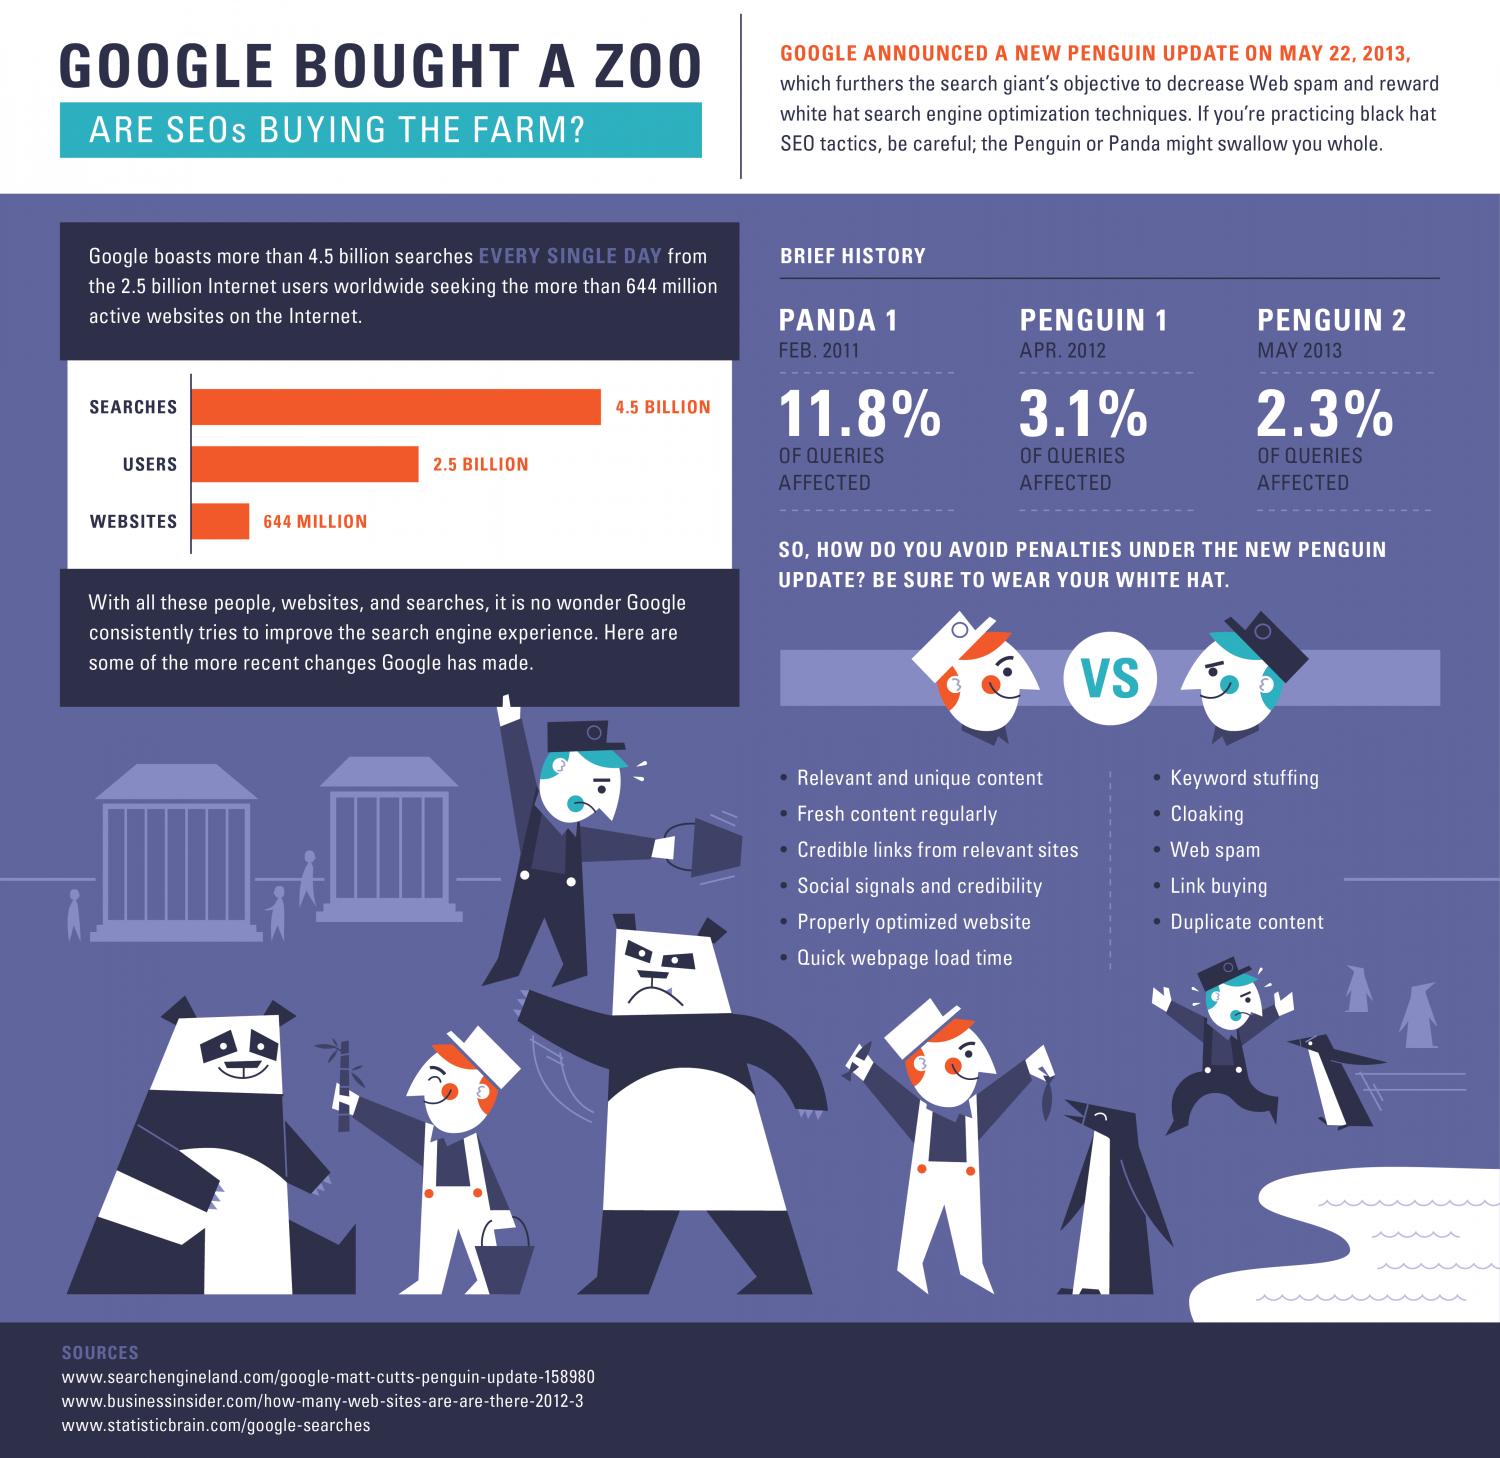 Google Bought a Zoo Infographic